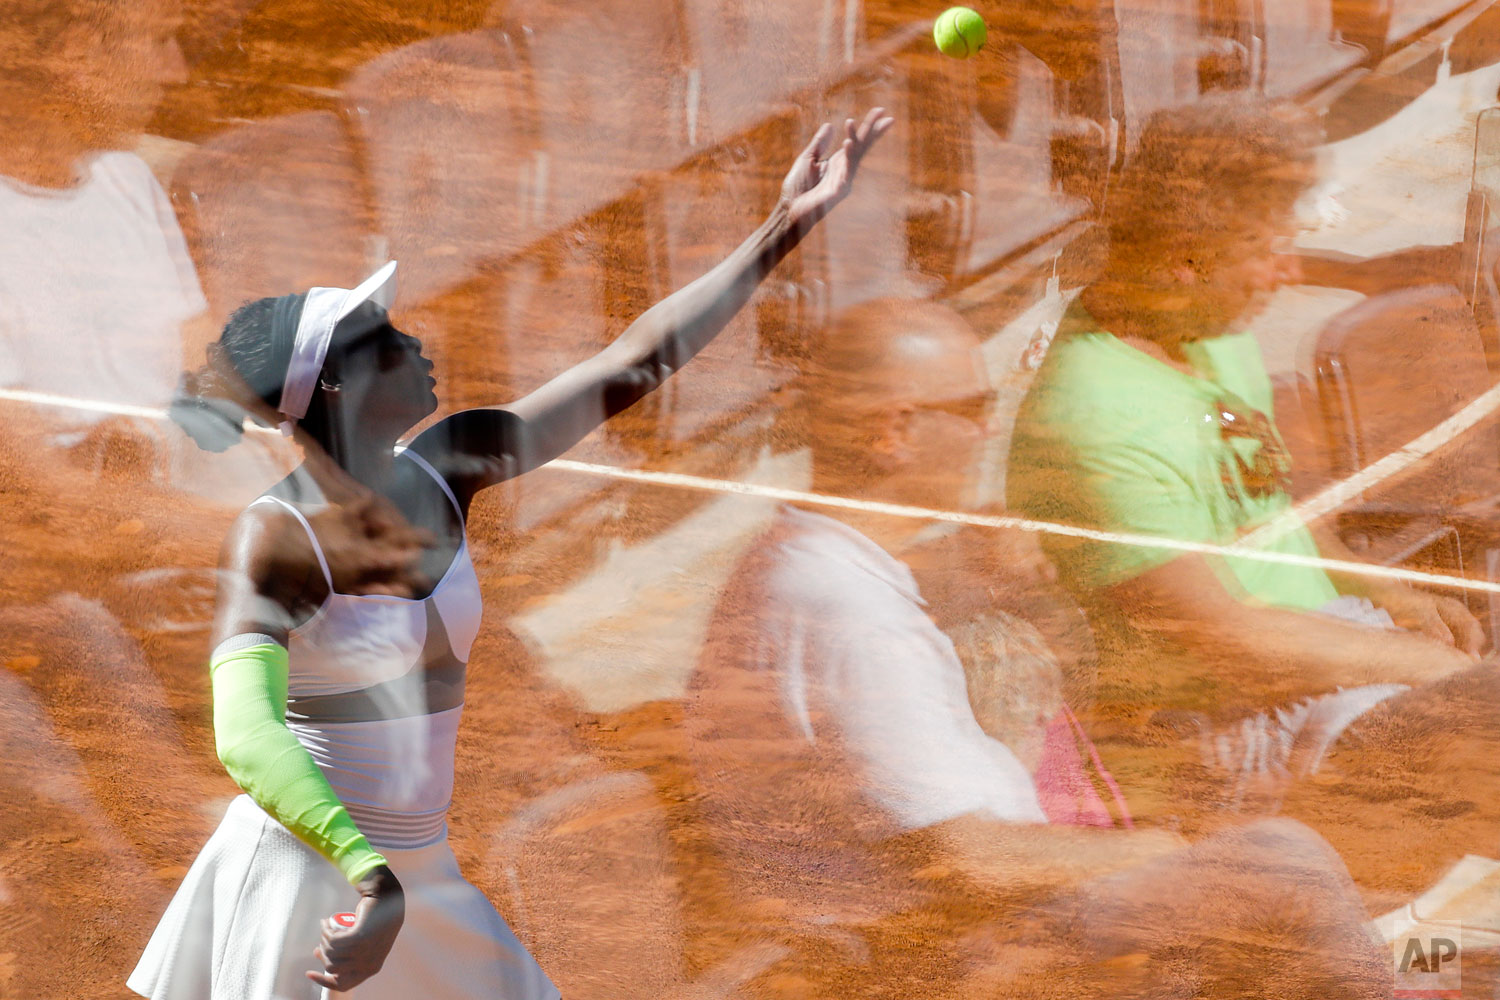 Tennis Reflection